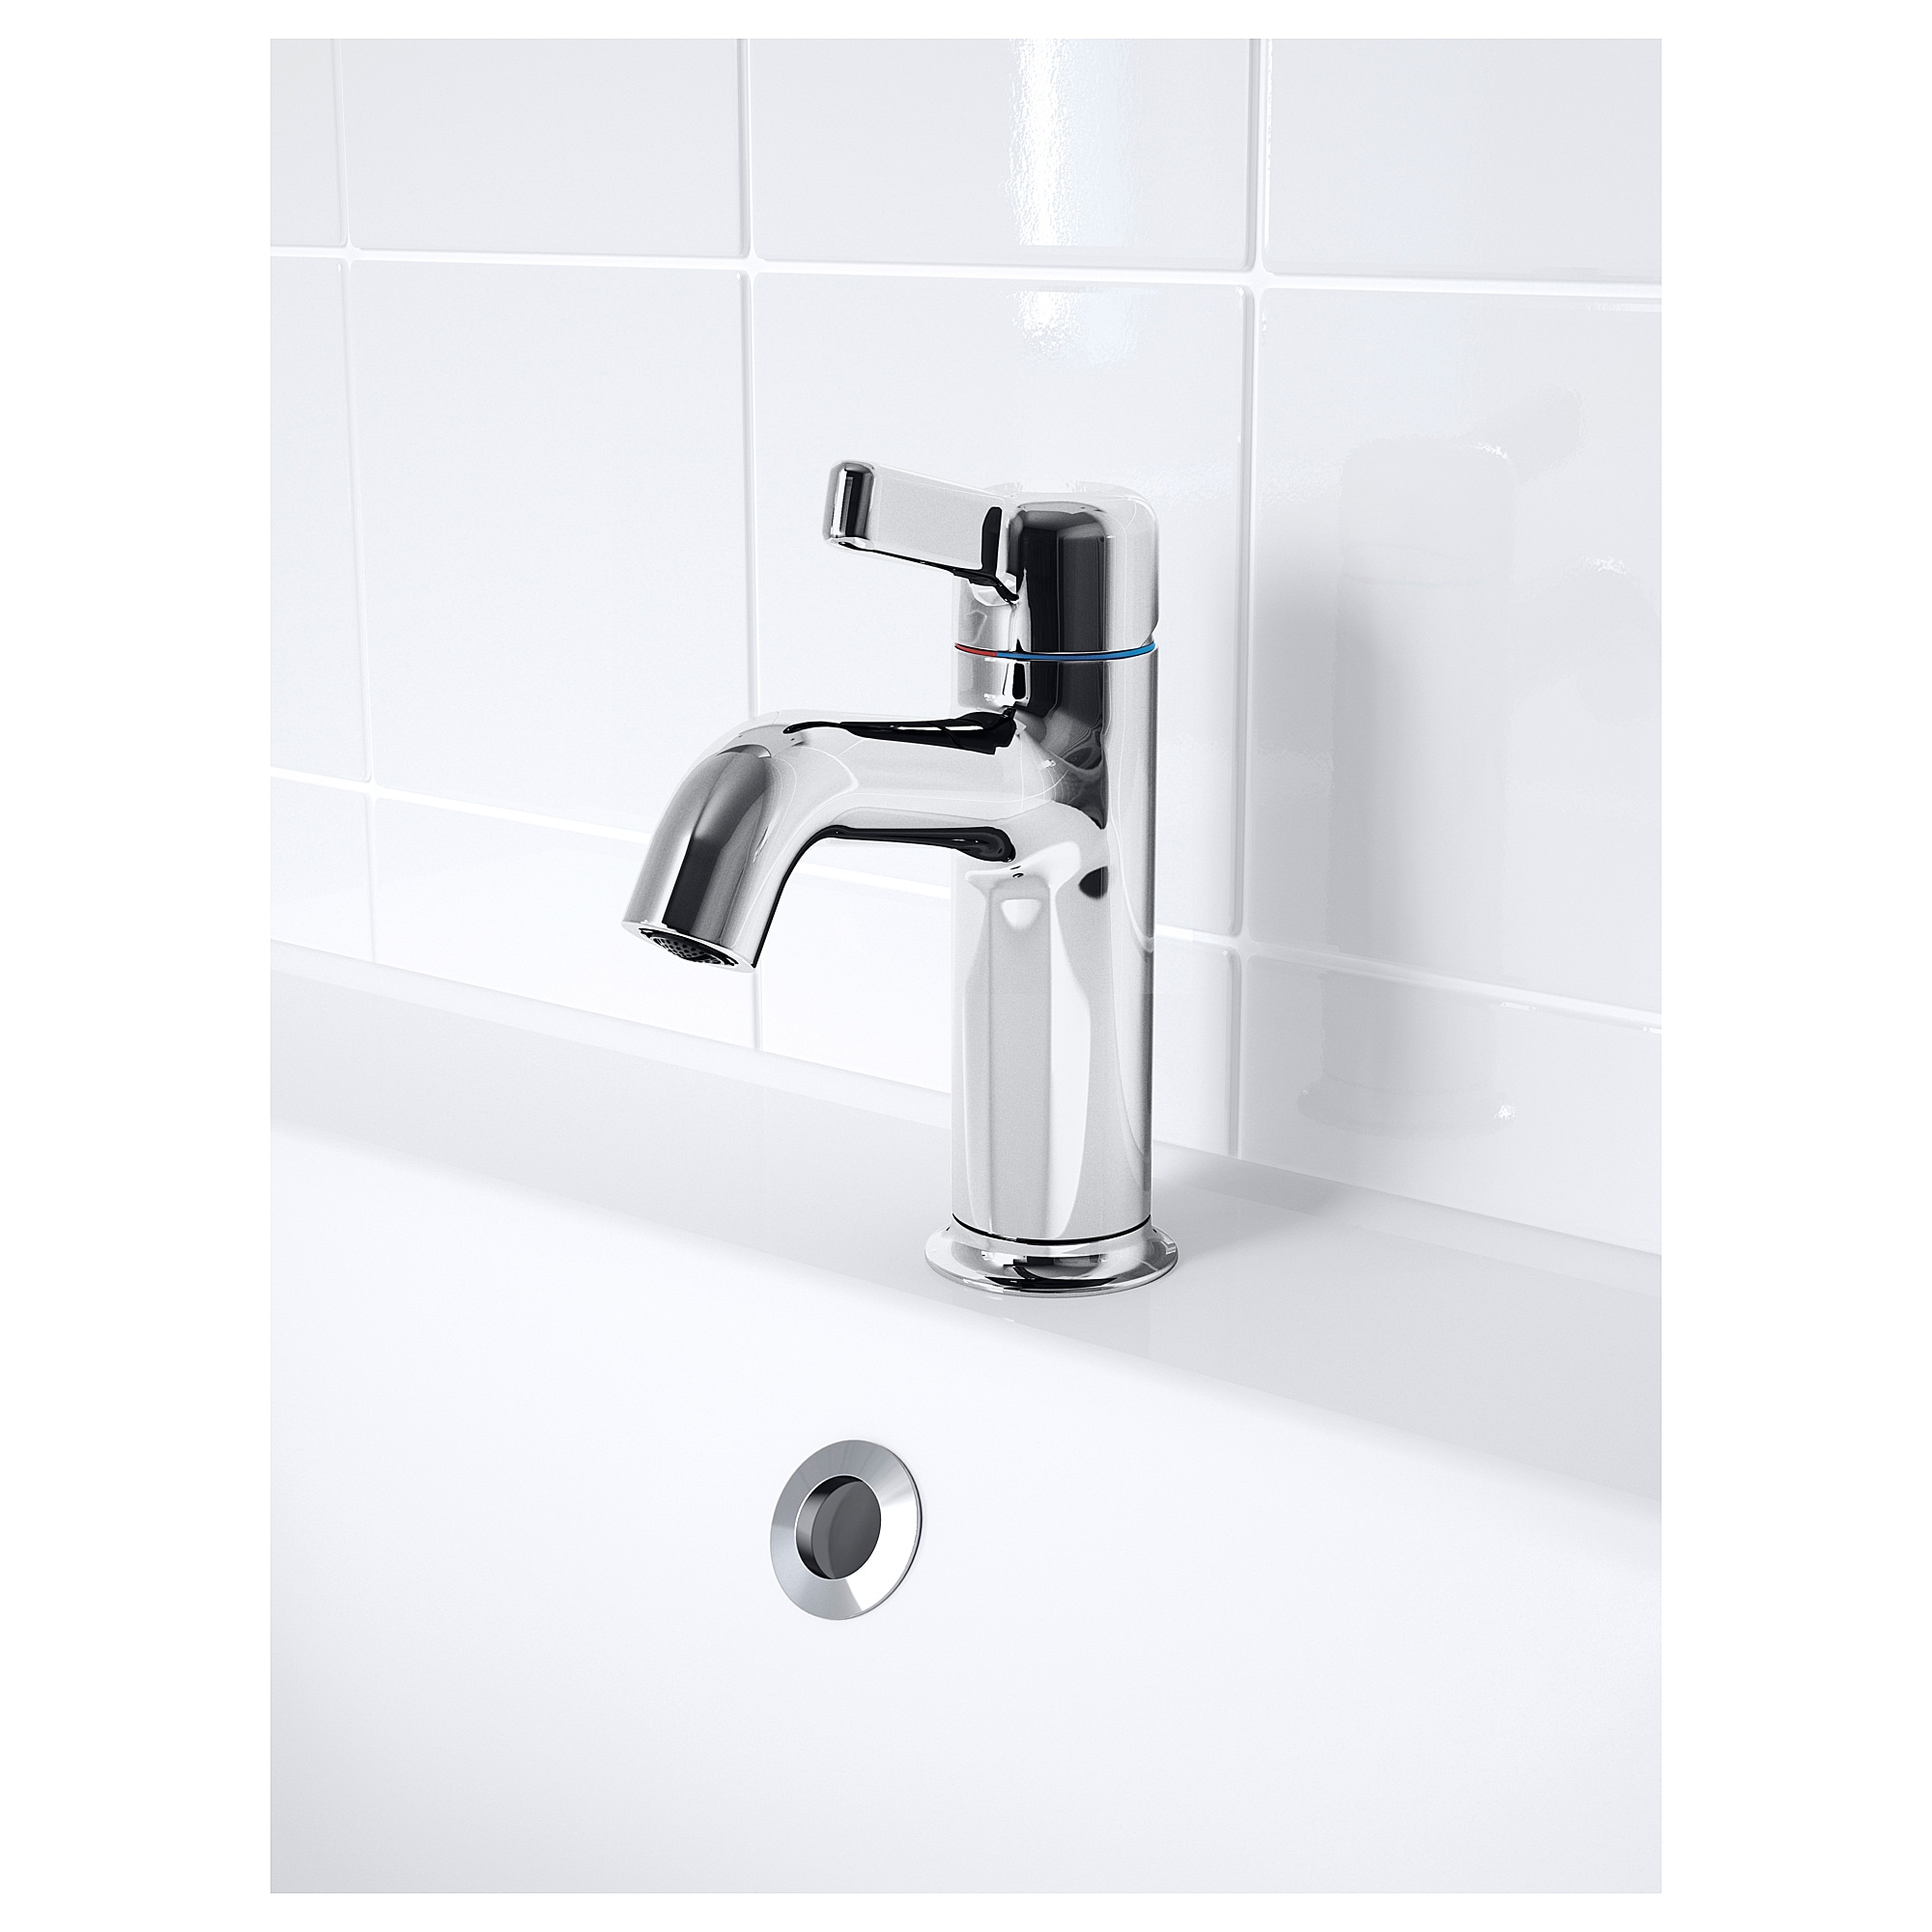 Awesome VOXNAN Bath Faucet With Strainer   IKEA